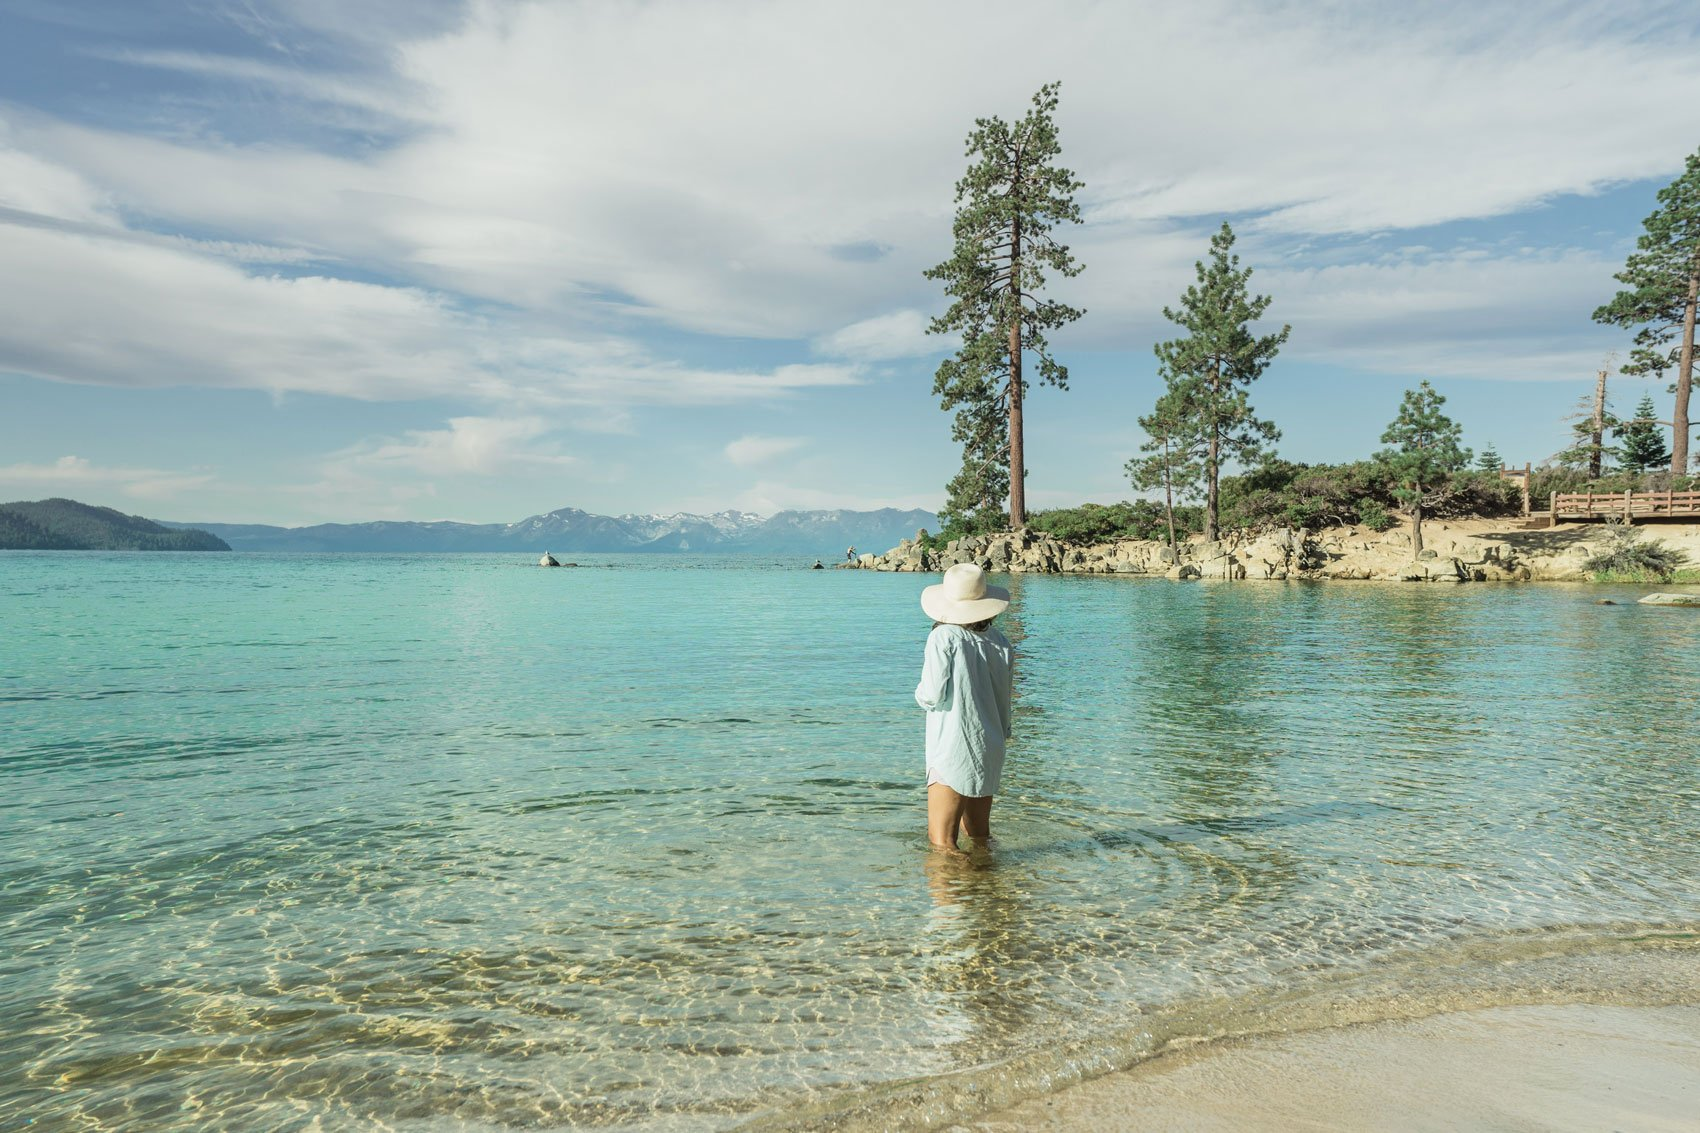 Woman at Sand Harbor beach, Lake Tahoe